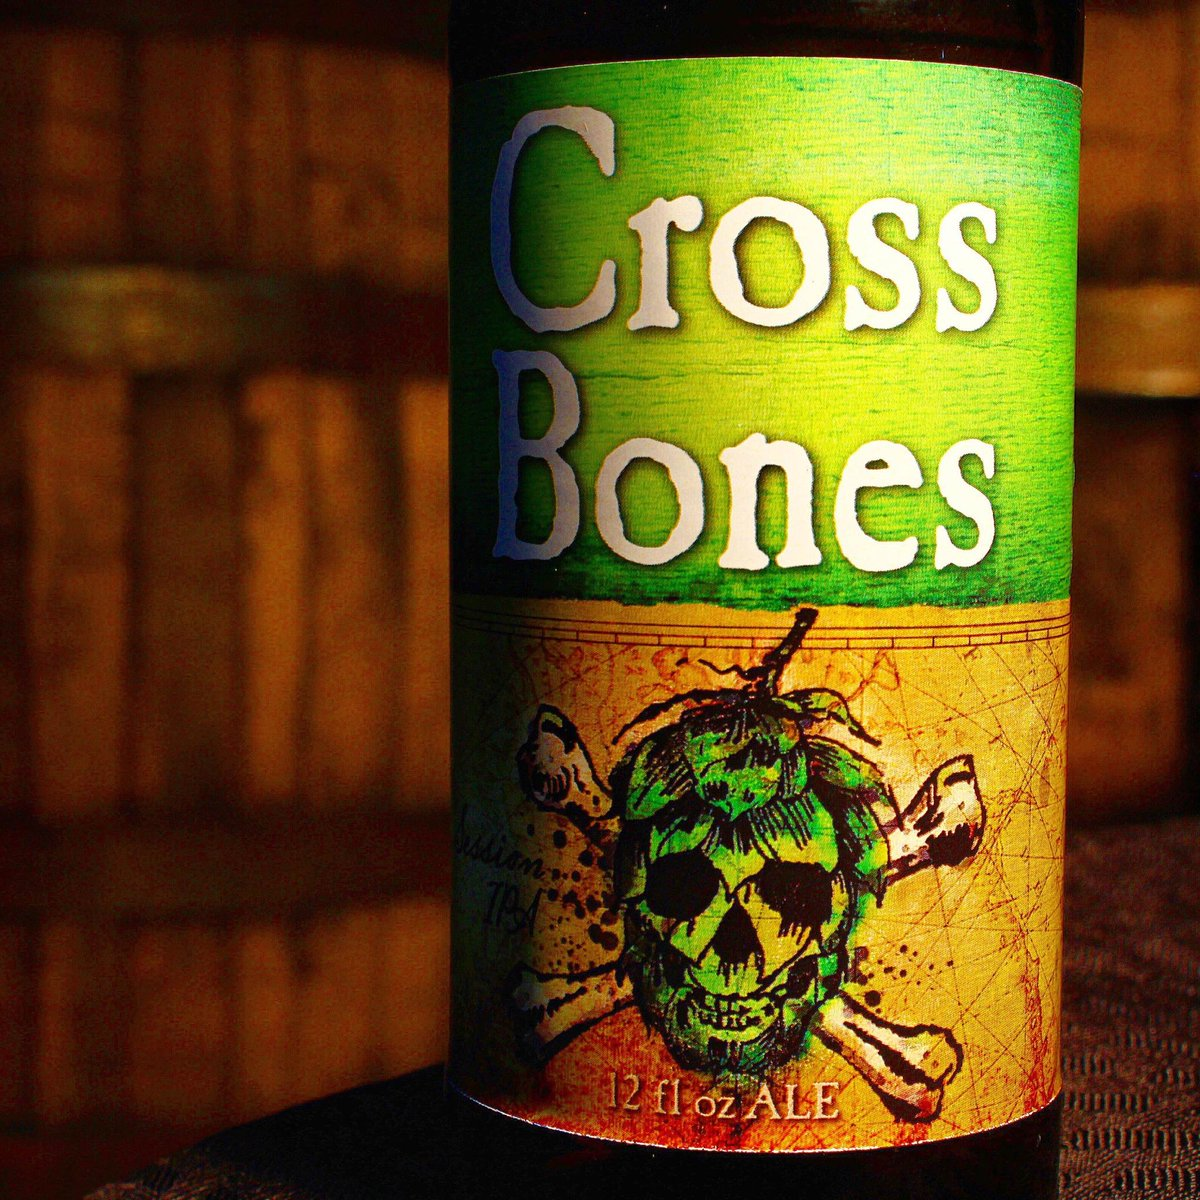 Introducing our first new year-round beer since 2003...#CrossBones #January2015 #SessionIPA http://t.co/DzgYzVS6Hl